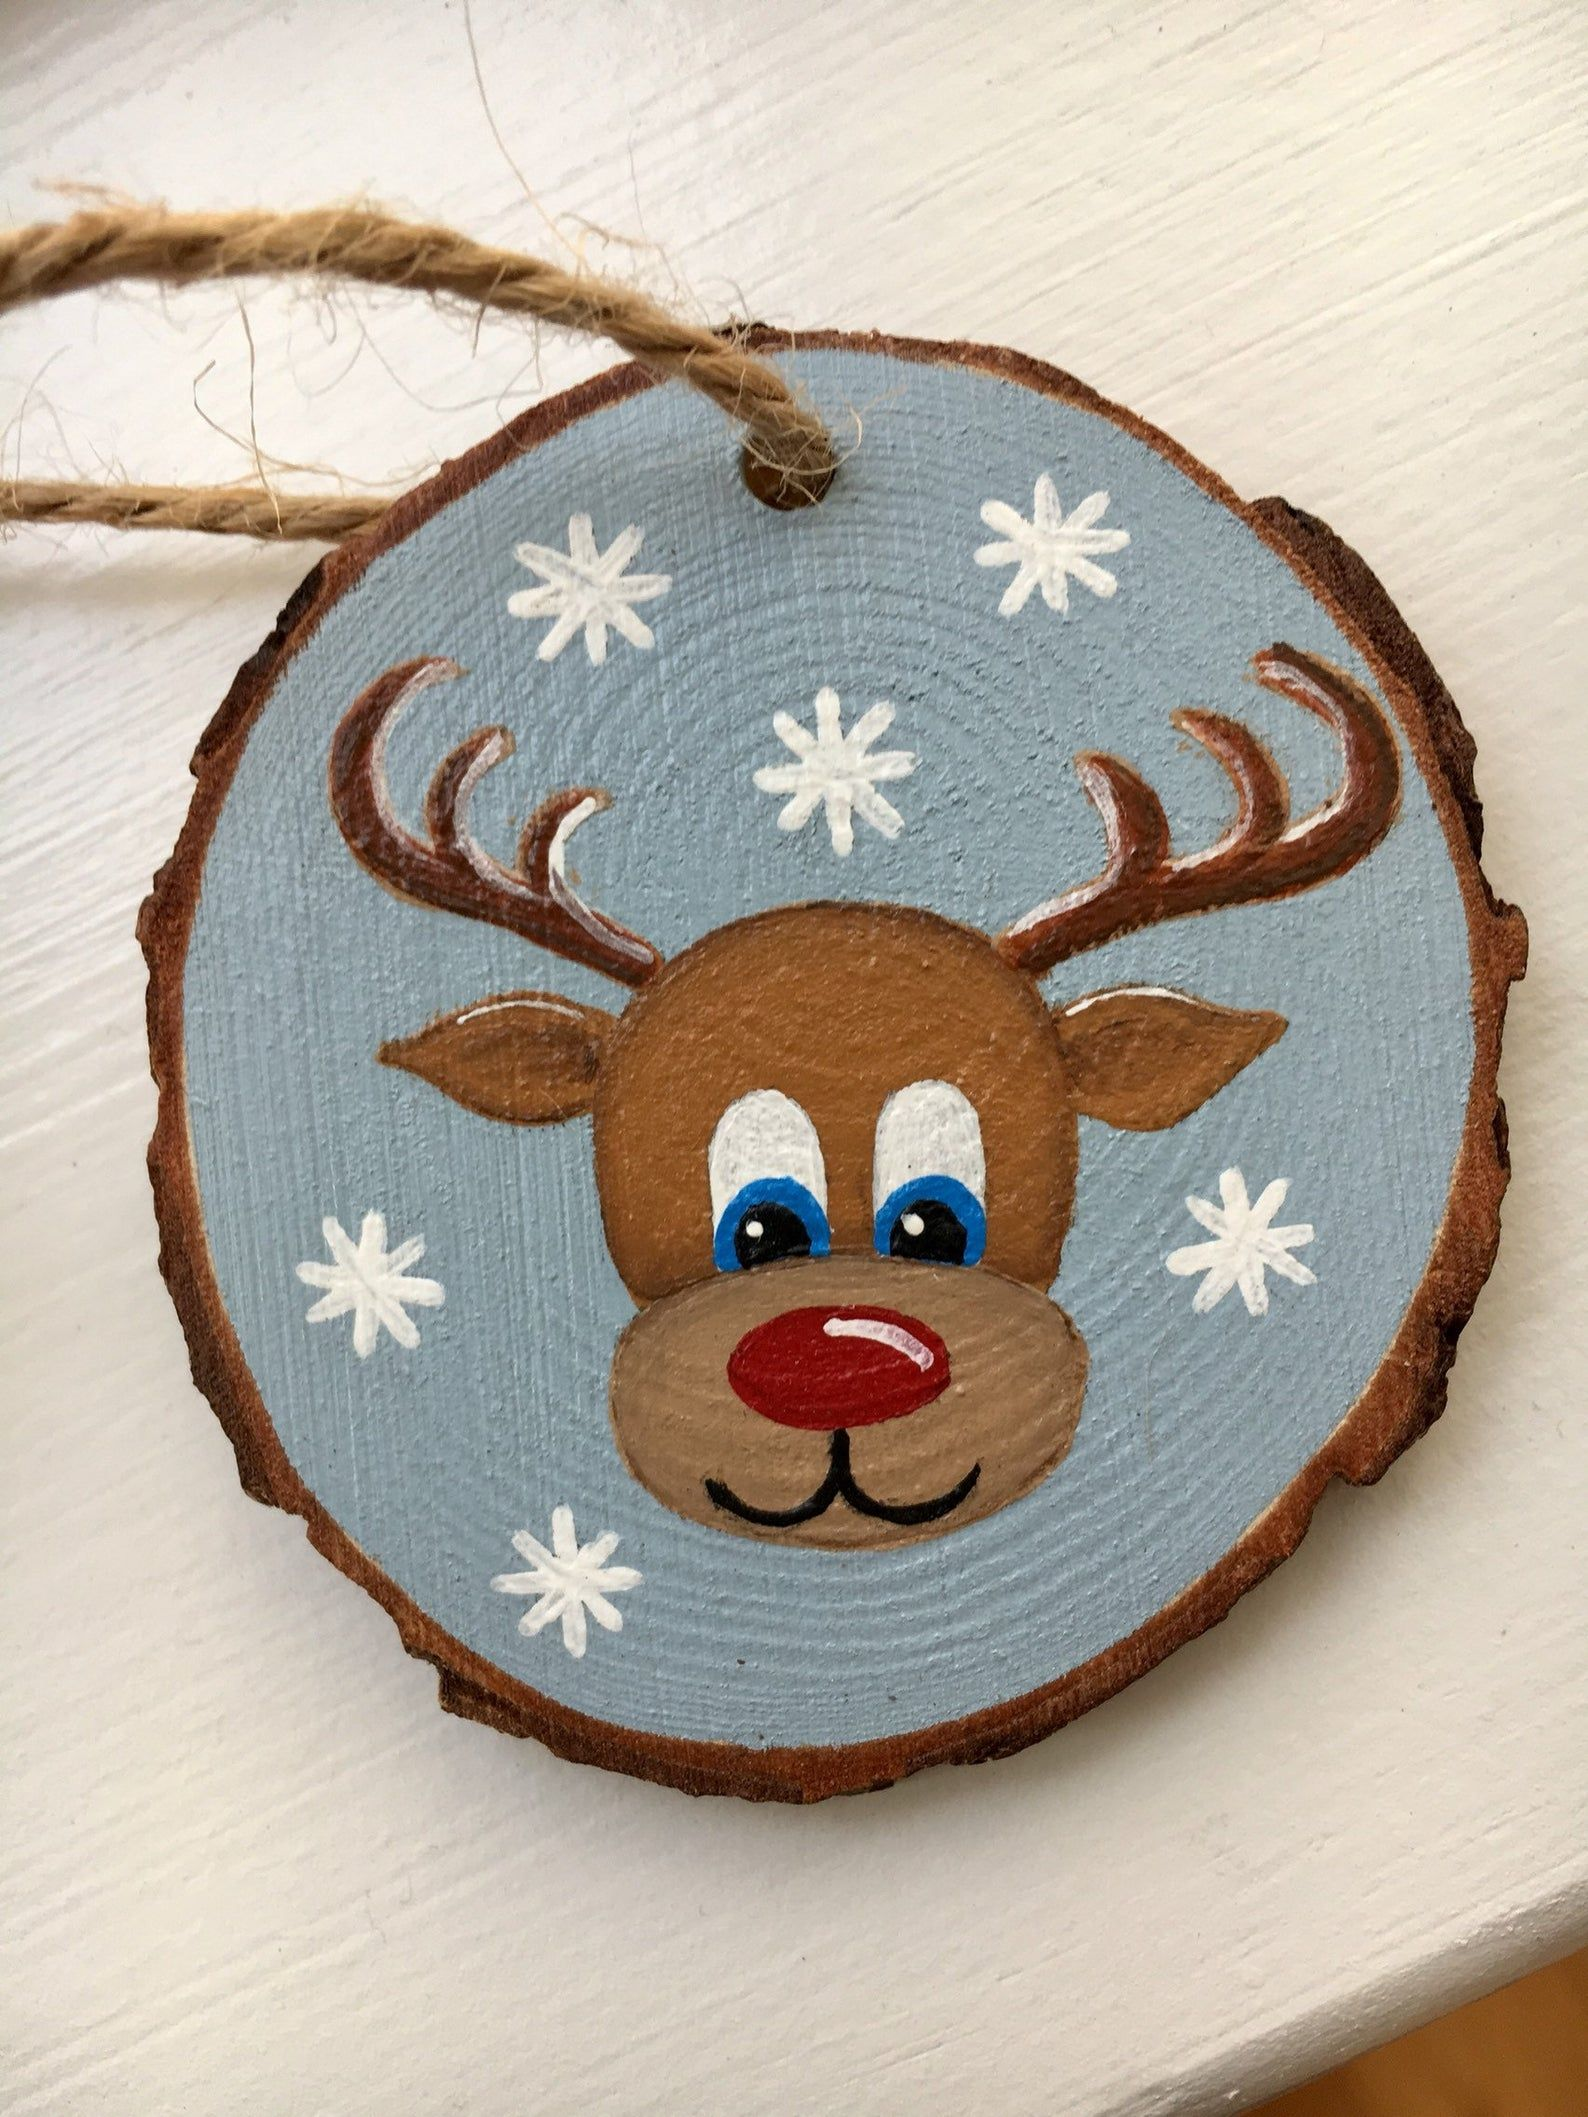 Reindeer Wood Slice Ornament Etsy Christmas Ornament Crafts Wood Christmas Ornaments Christmas Ornaments